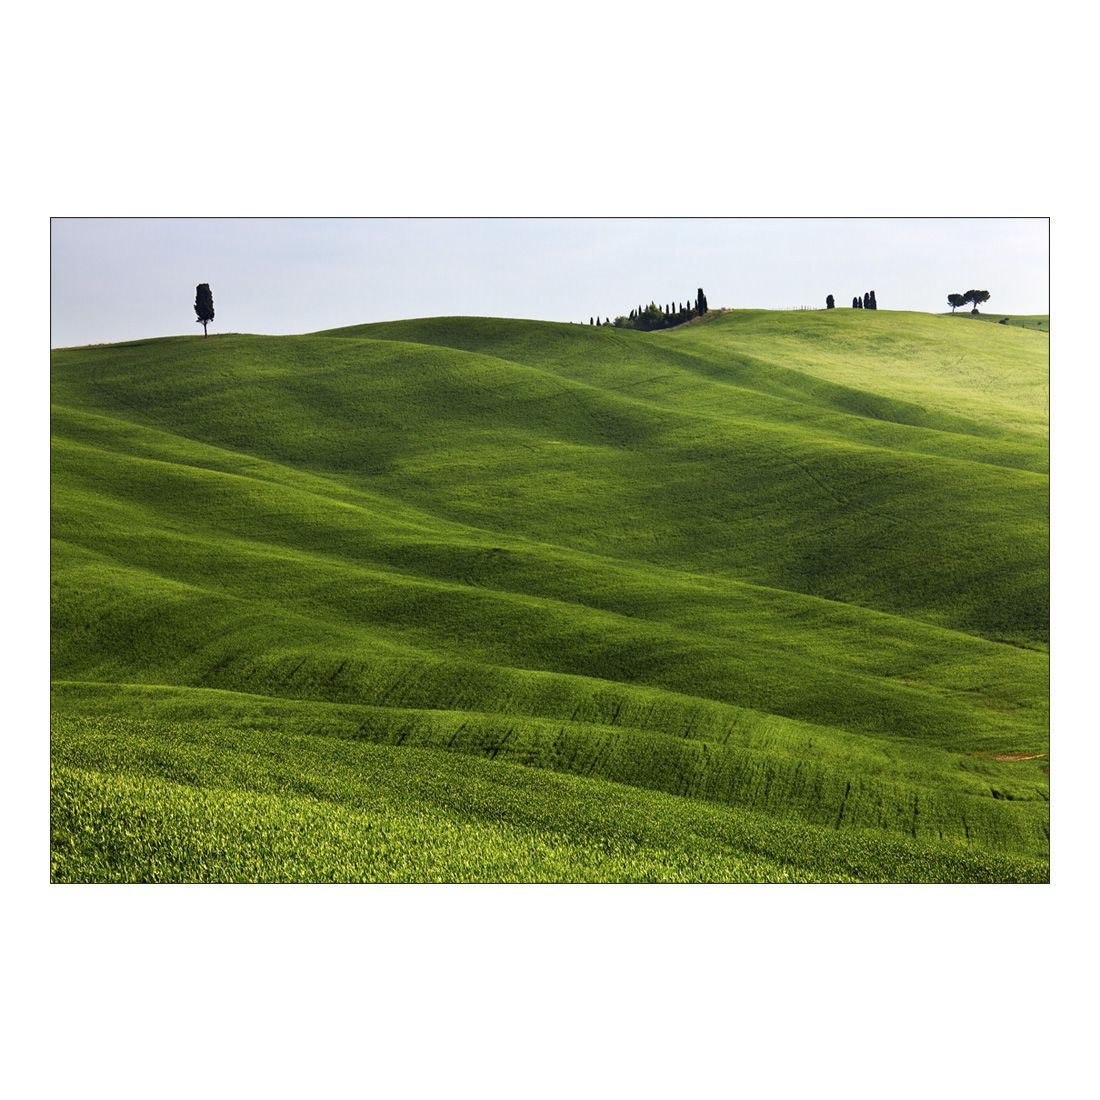 Acrylglasbild Green Grassy Valley – Abmessung 90×60 cm, Gallery of Innovative Art bestellen